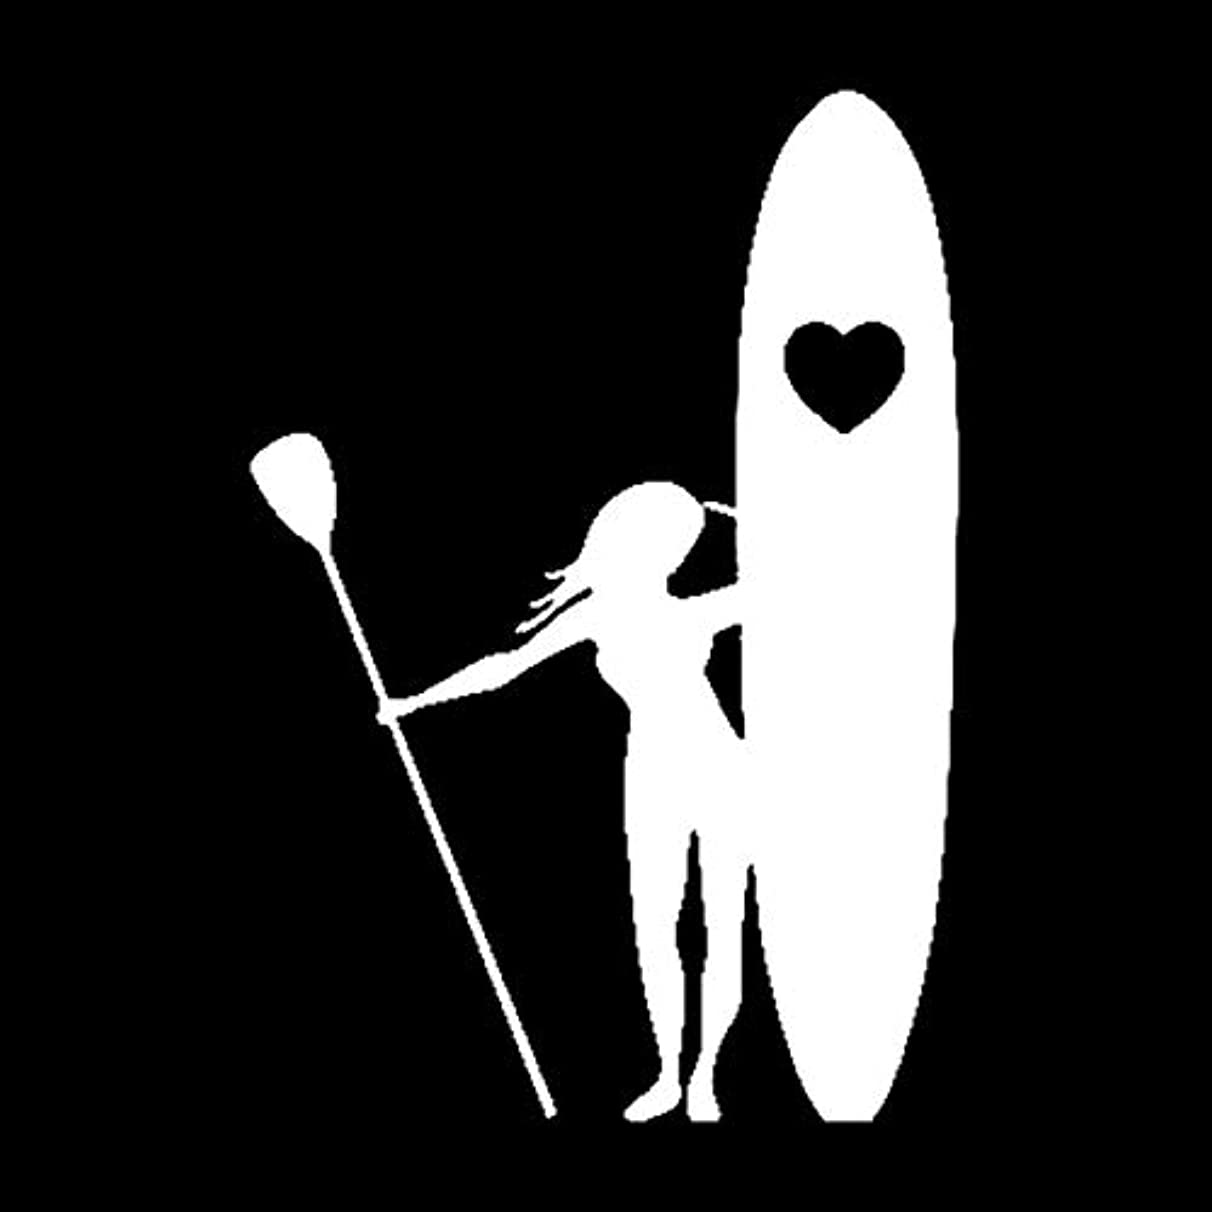 Scrapbooking Stickers & Sticker Machines, Vinyl Decal Sticker, 1PC 11.5cmx16.7cm Girl Stand Up Paddle Boarding Heart Love Stickers Car Decal Stickers - White